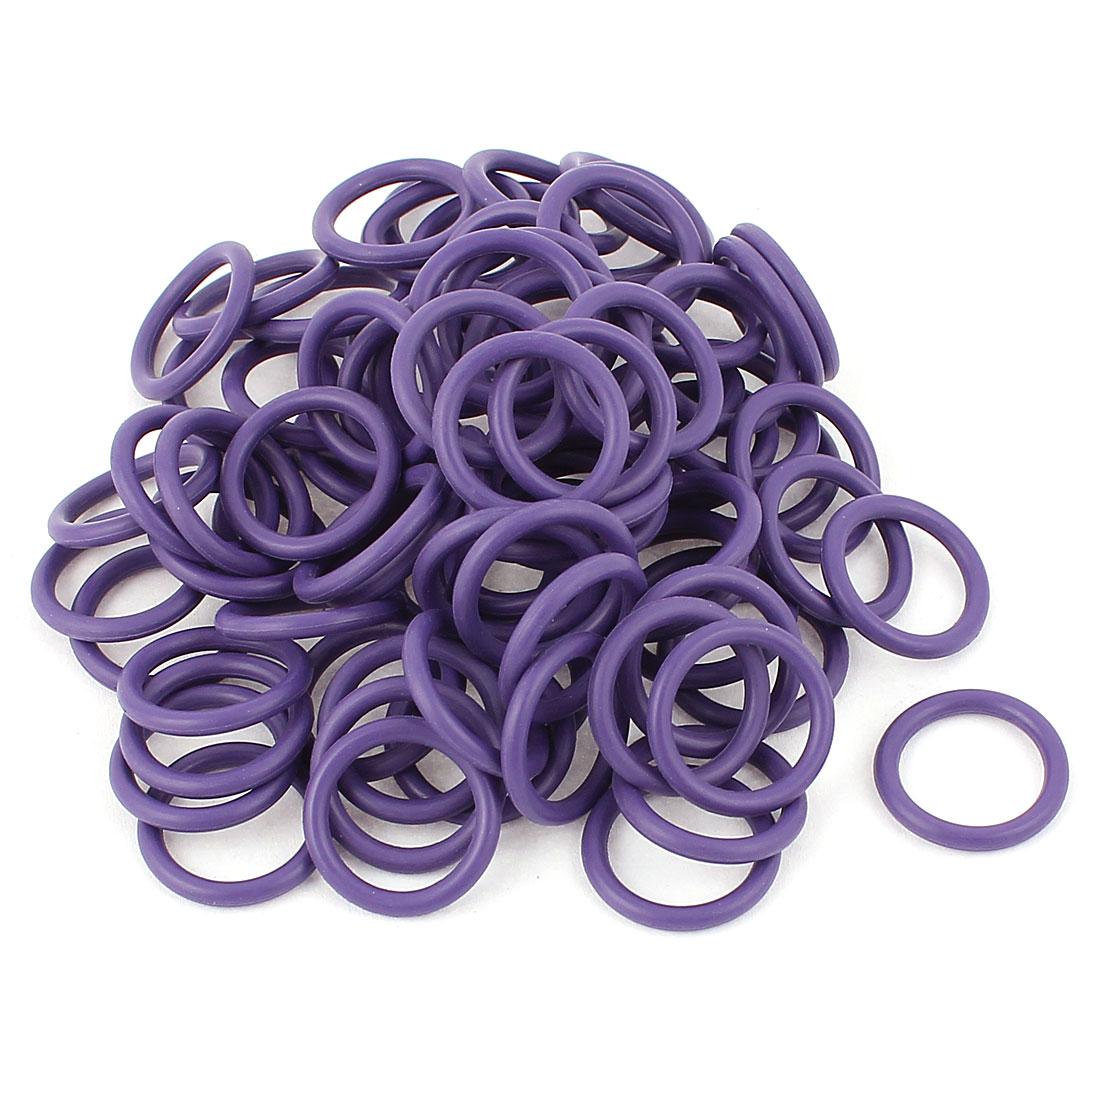 100 Pcs Rubber Gasket Ring Purple O-ring Seals 18.6mm x 13.8mm x 2.4mm